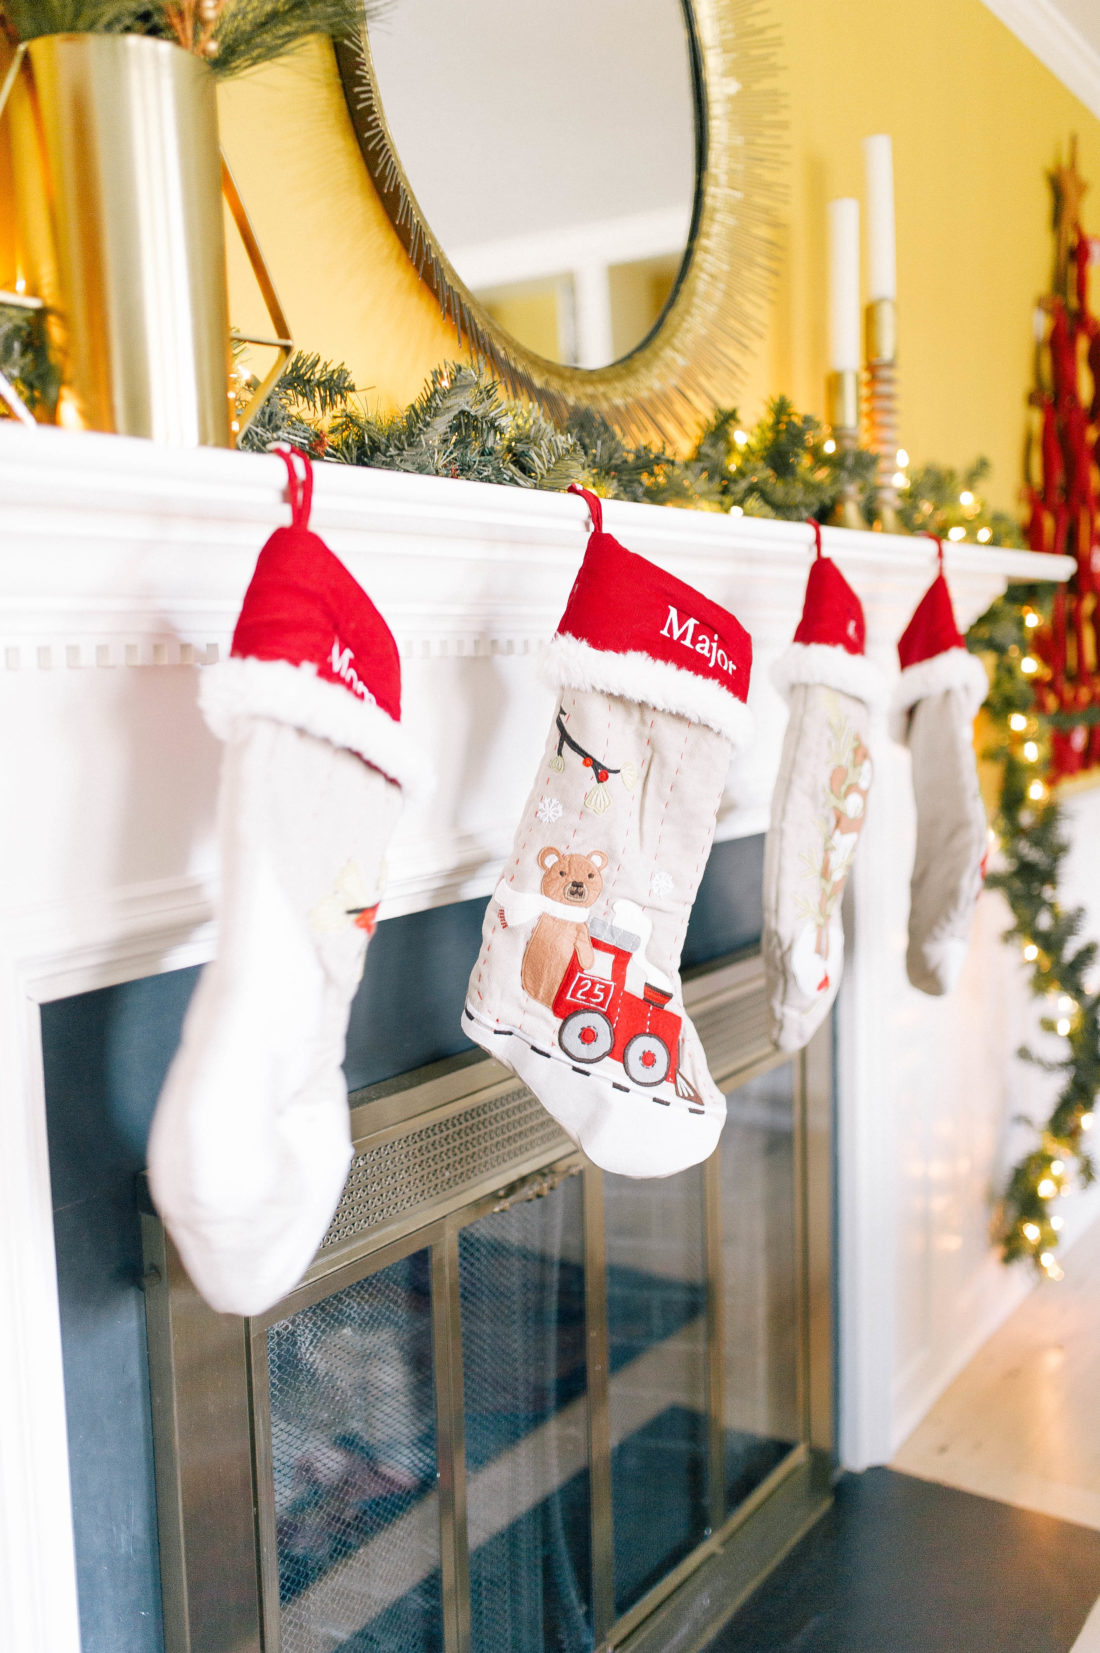 personalized stockings hang off of the mantel in Eva Amurri Martino's Connecticut home